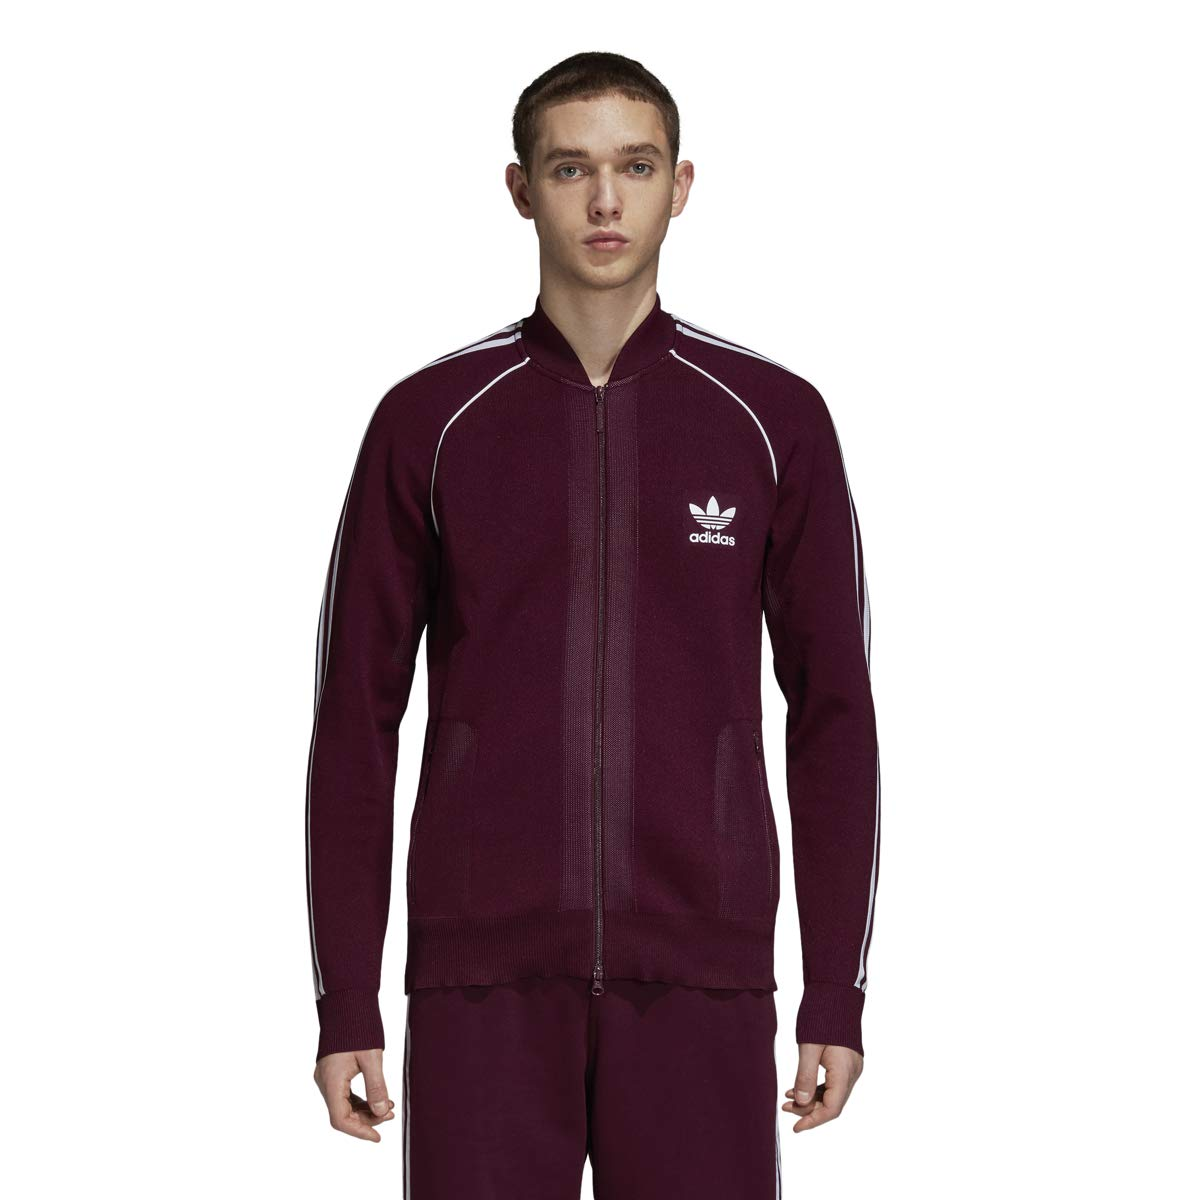 30f182d48f435 adidas Men's Originals Track Jacket Maroon dh5756 at Amazon Men's ...